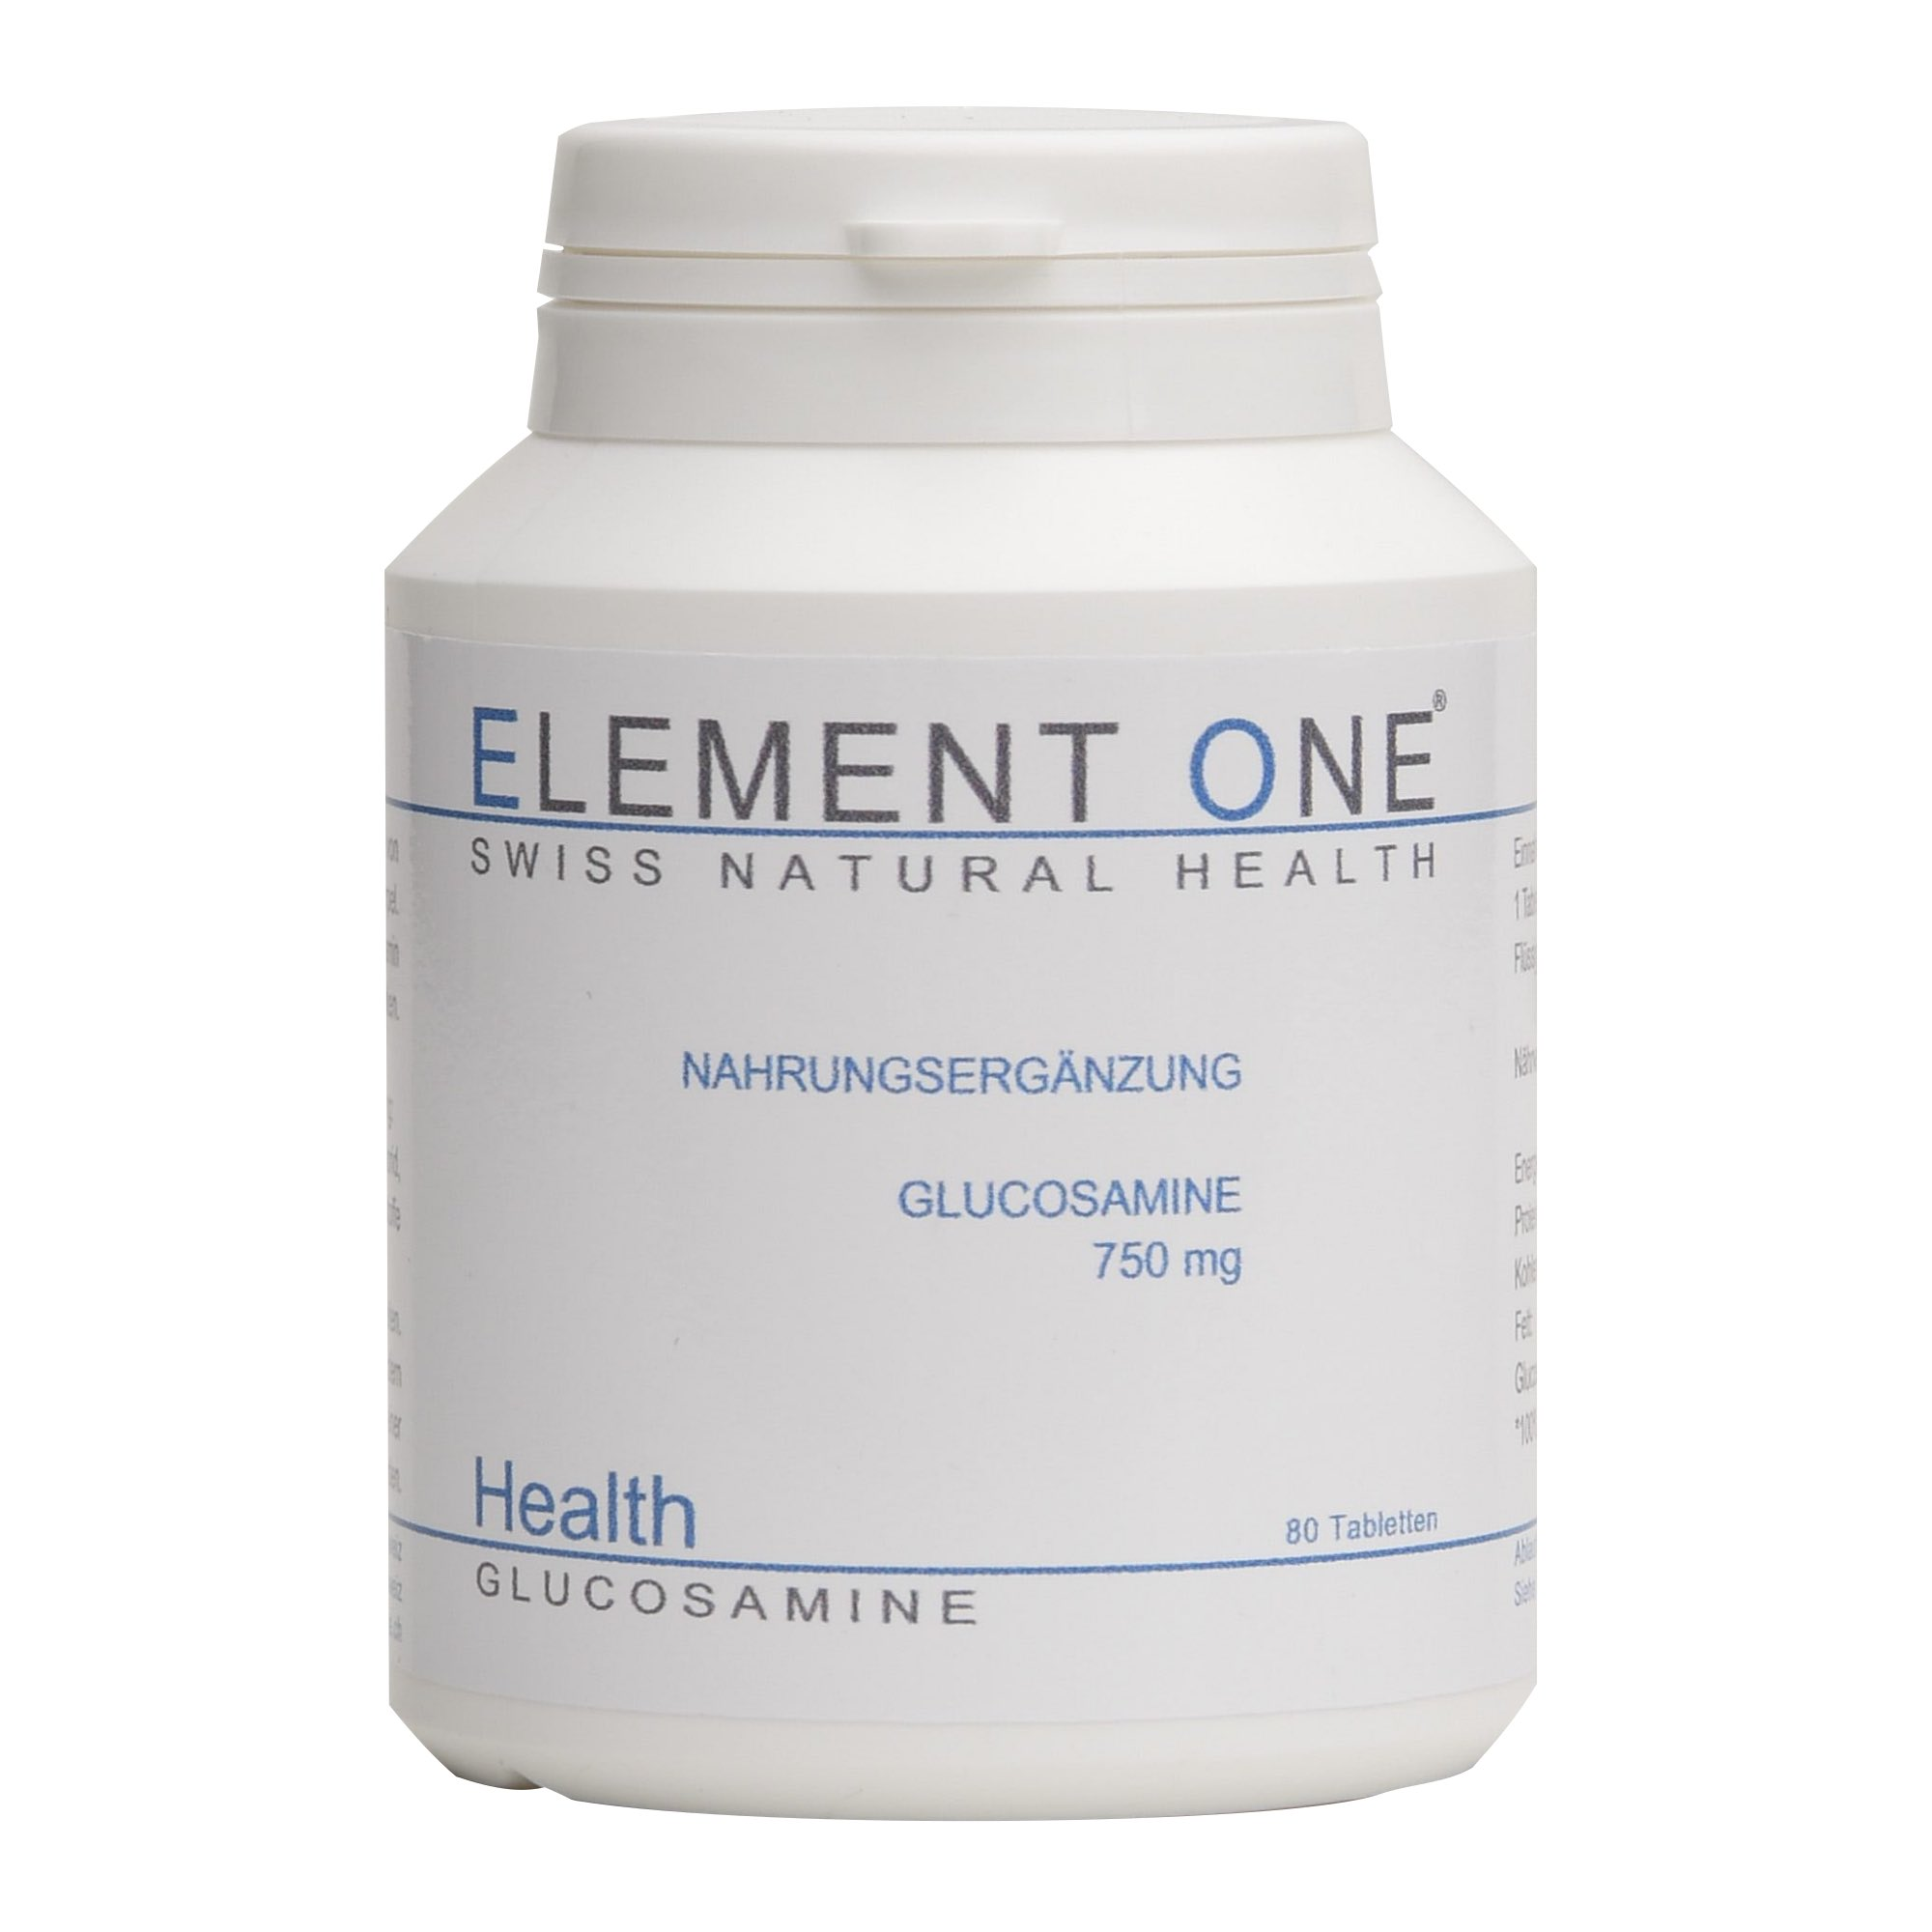 HEALTH | GLUCOSAMINE | SWISS NATURAL HEALTH